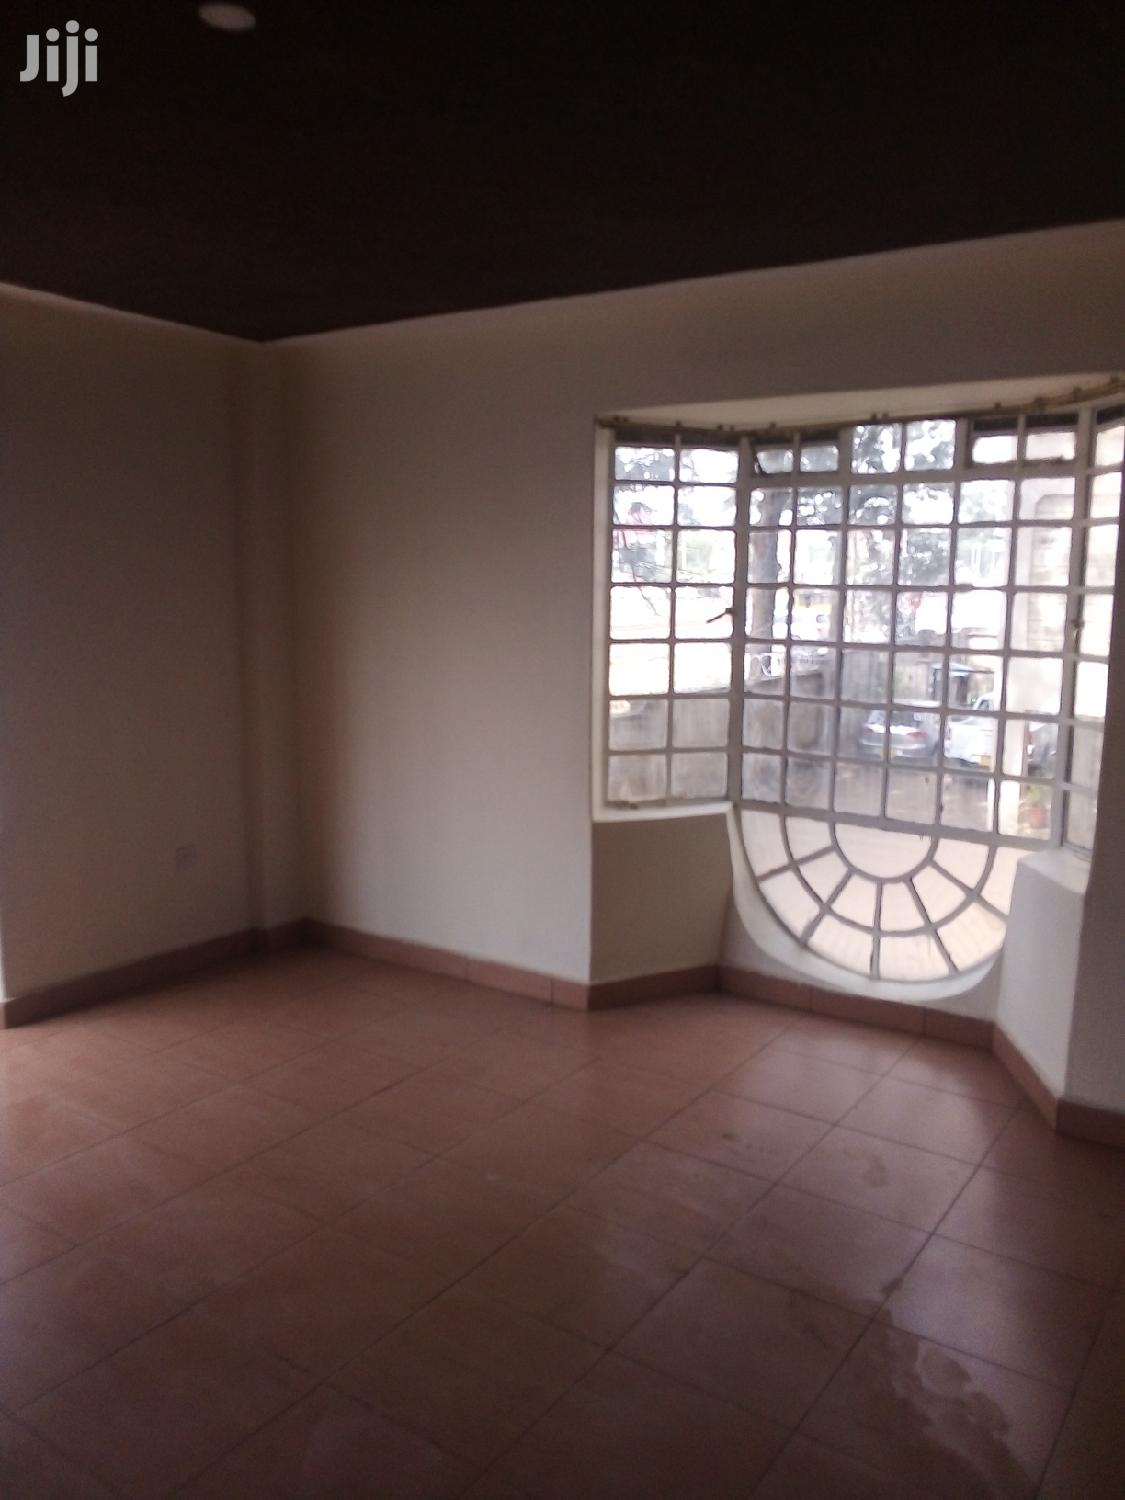 Executive Two Bedroom Apartment In Kilimani Master En Suite To Let | Houses & Apartments For Rent for sale in Kilimani, Nairobi, Kenya